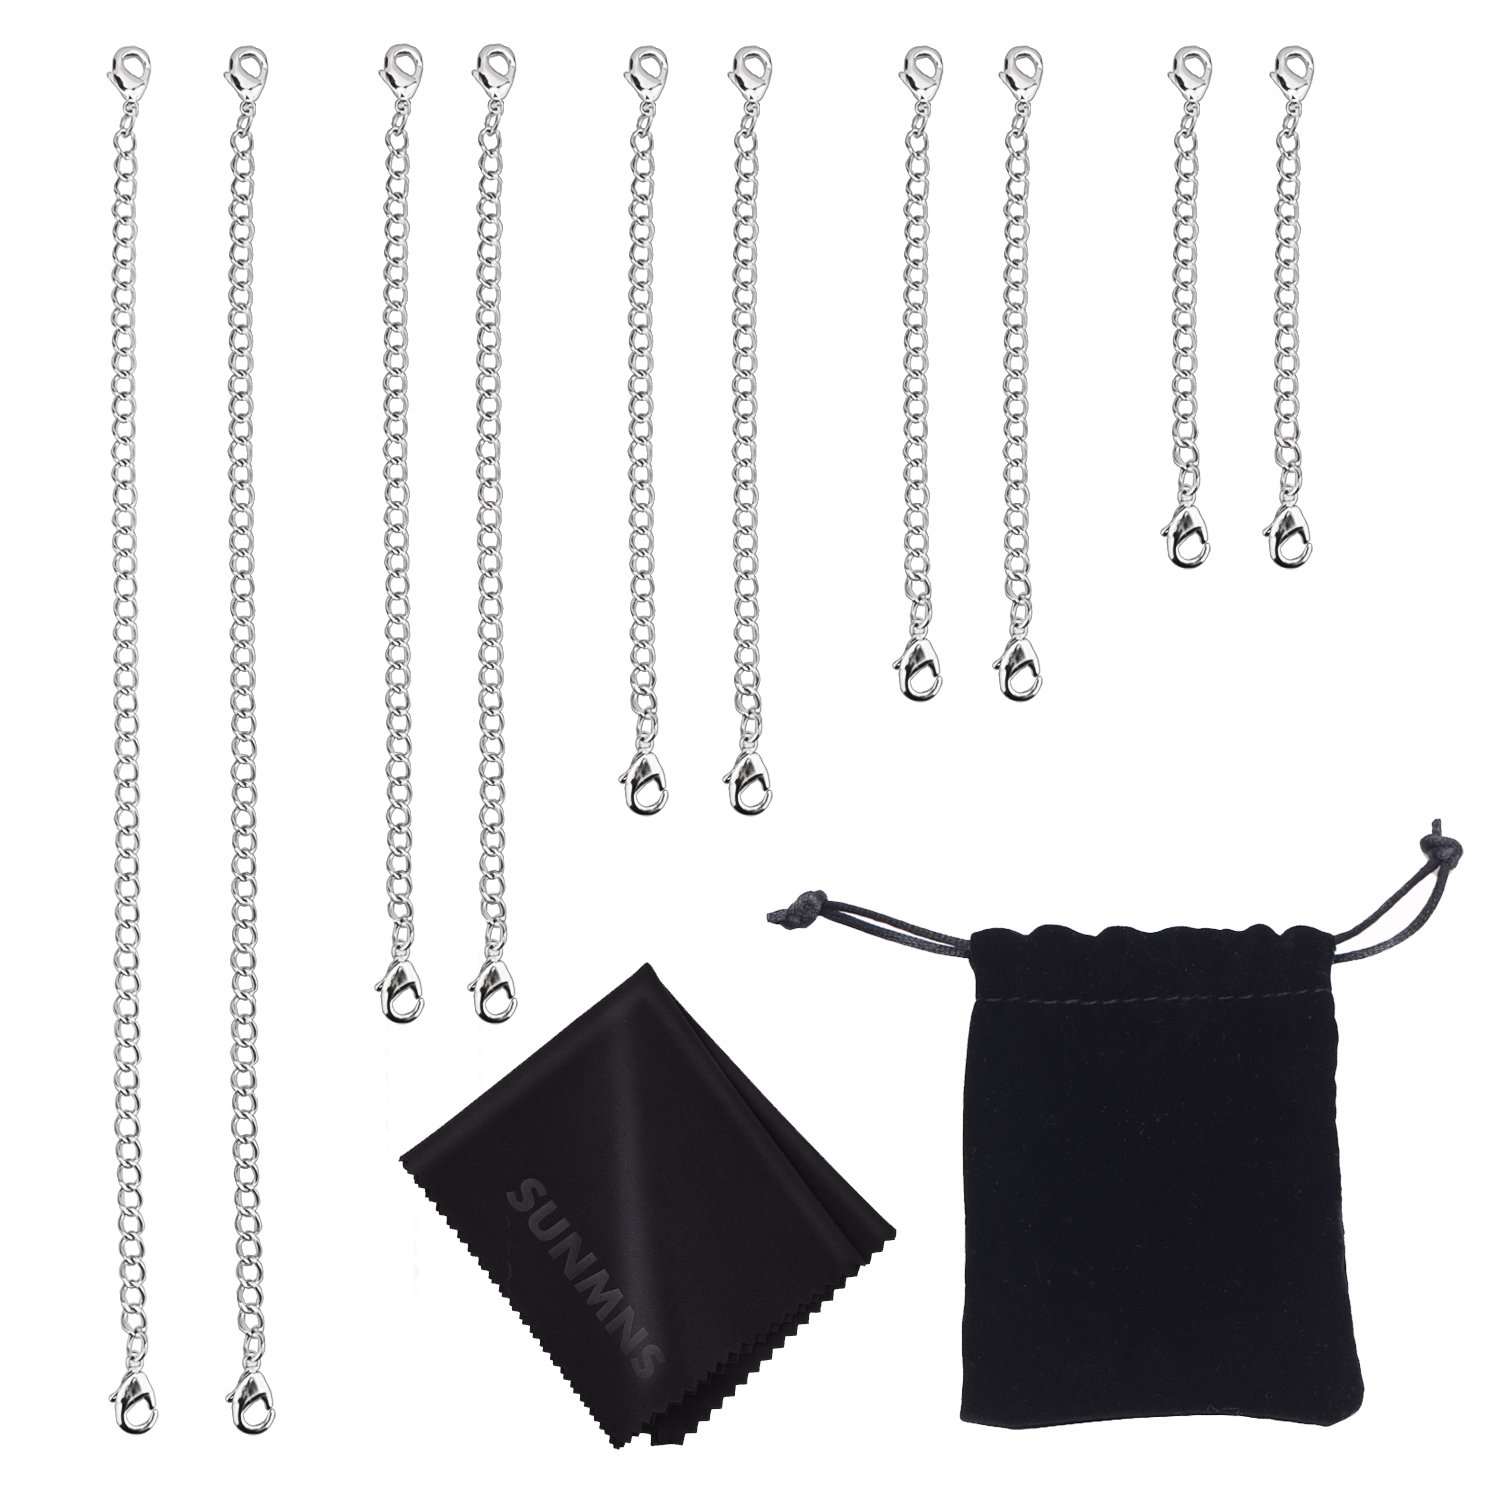 Sunmns Slender Stainless Steel Necklace Bracelet Extender Chain Set, 10 Pieces (Silvery SunmnDirect